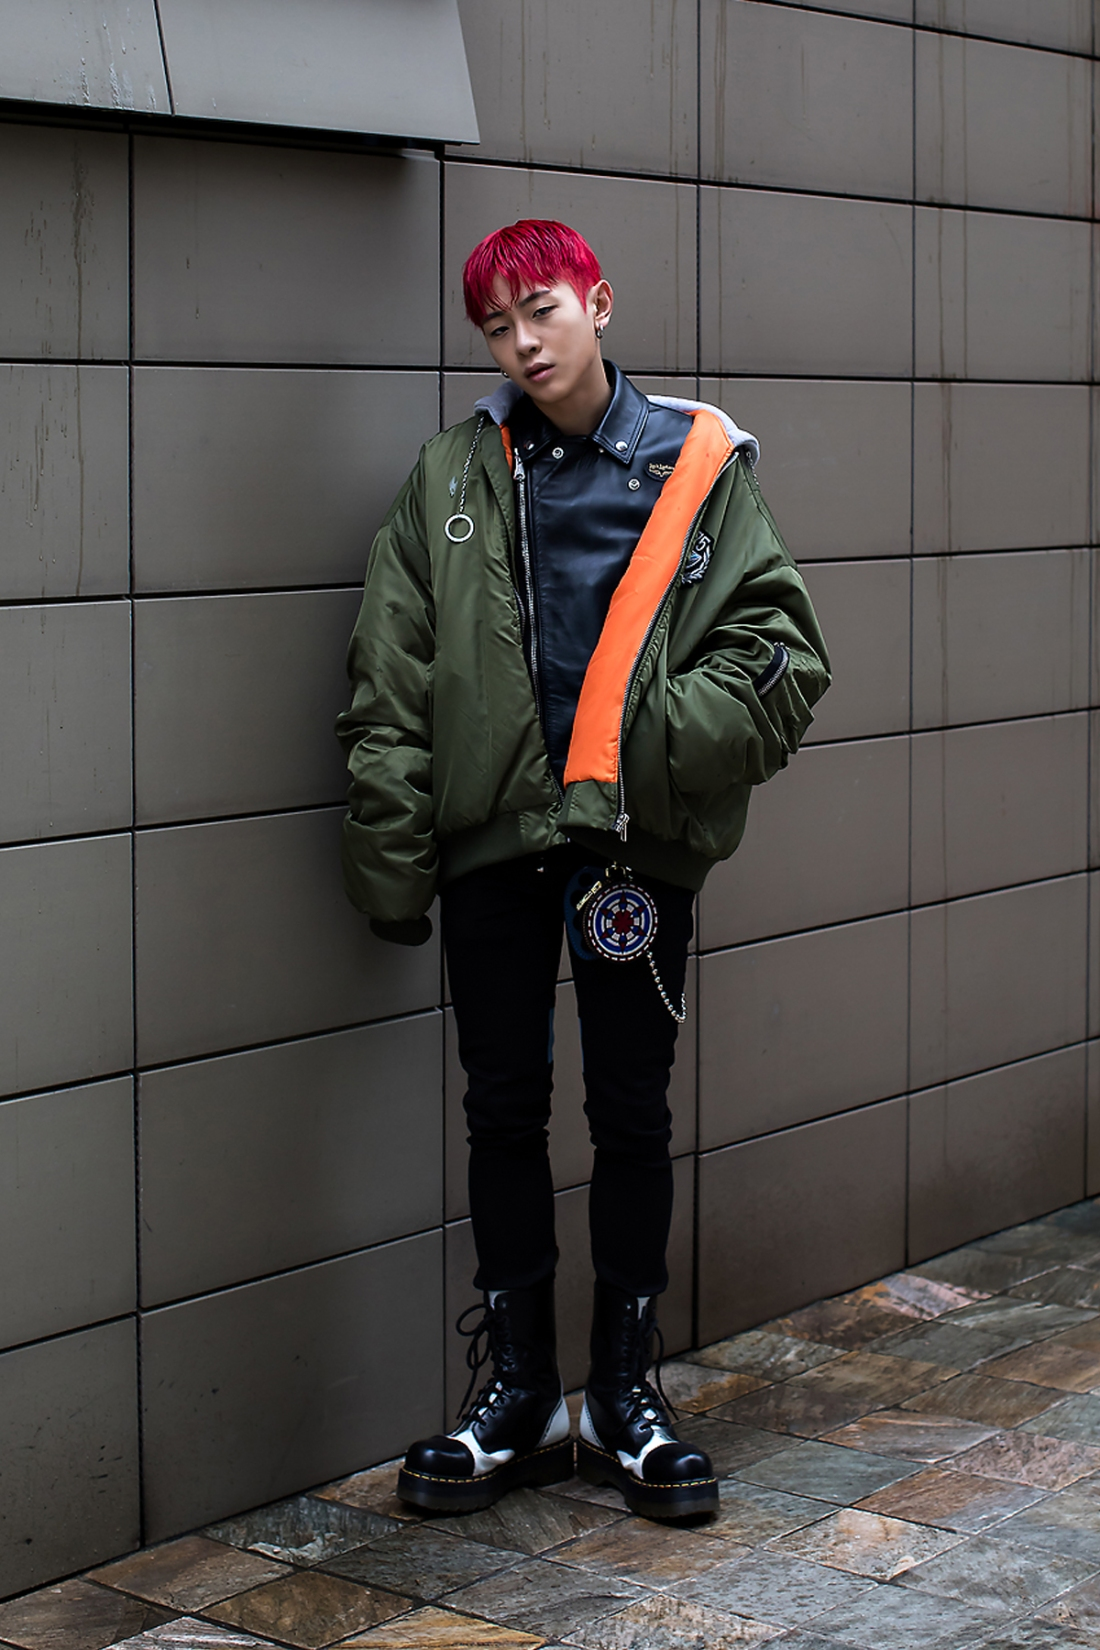 park-jihoon-street-fashion-2017-in-seoul